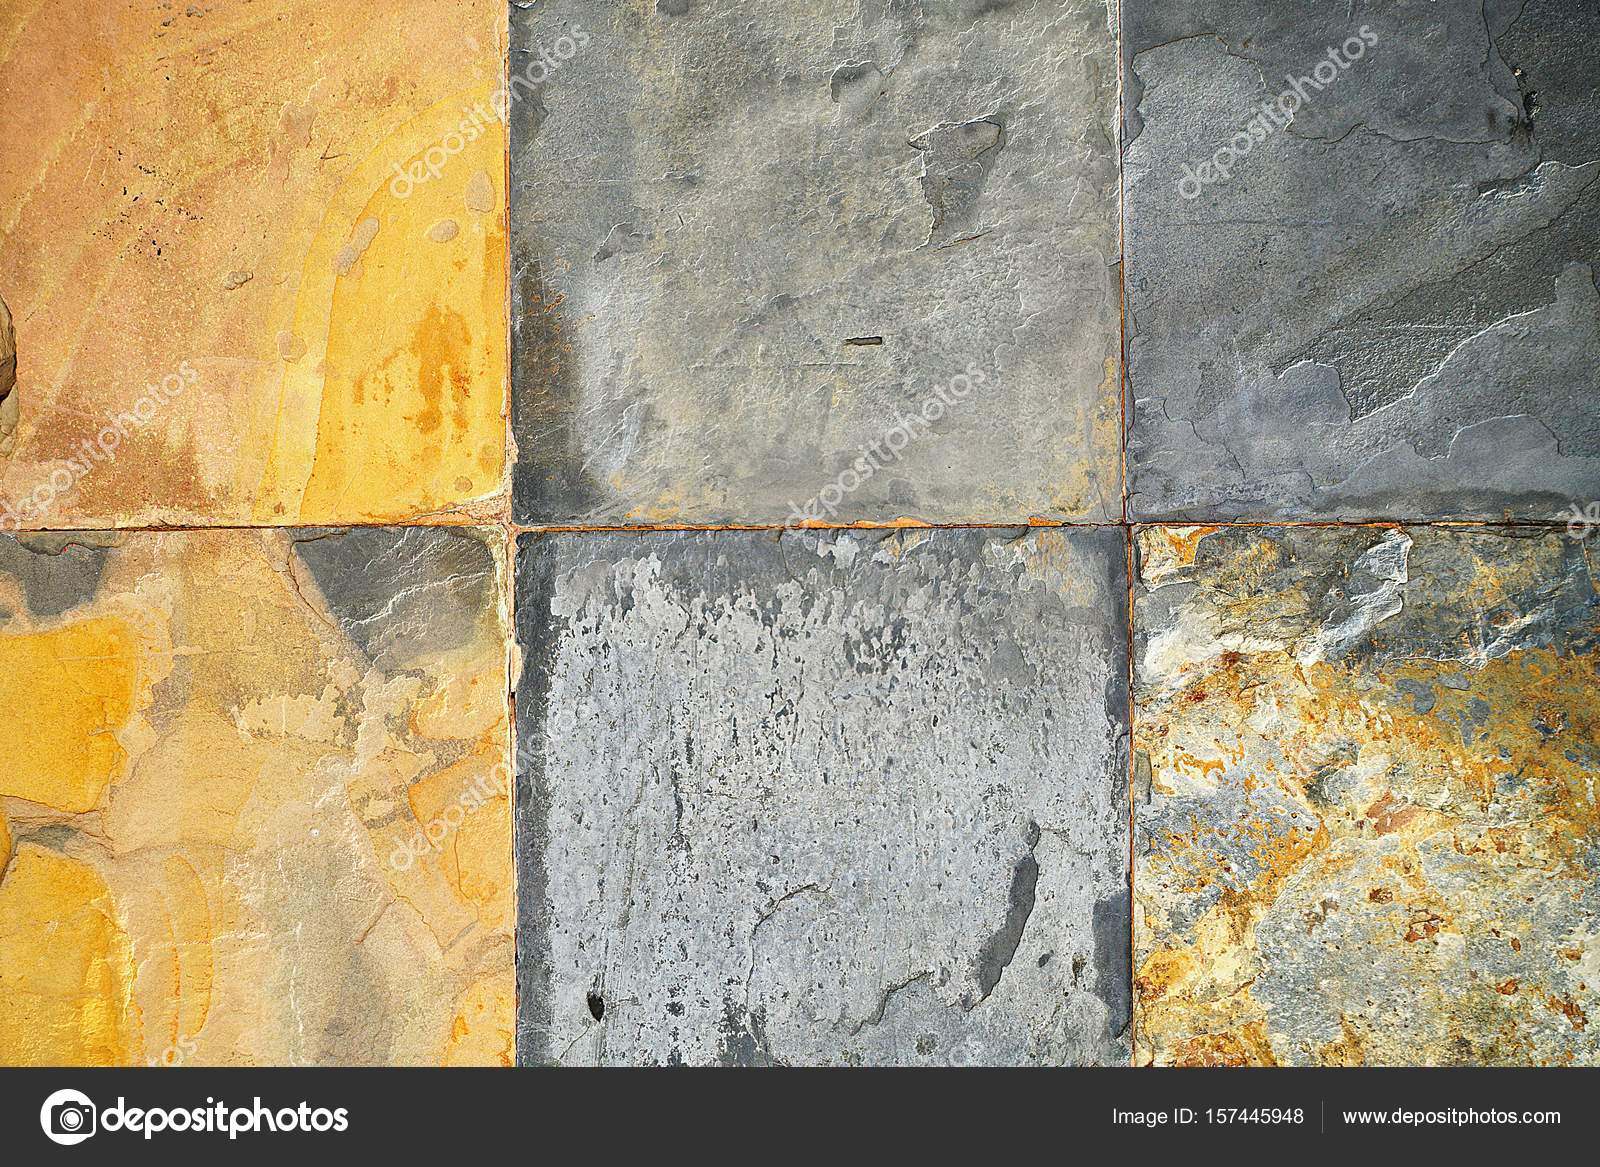 Old wall stone Cladding tiles patterns handcraft tiles